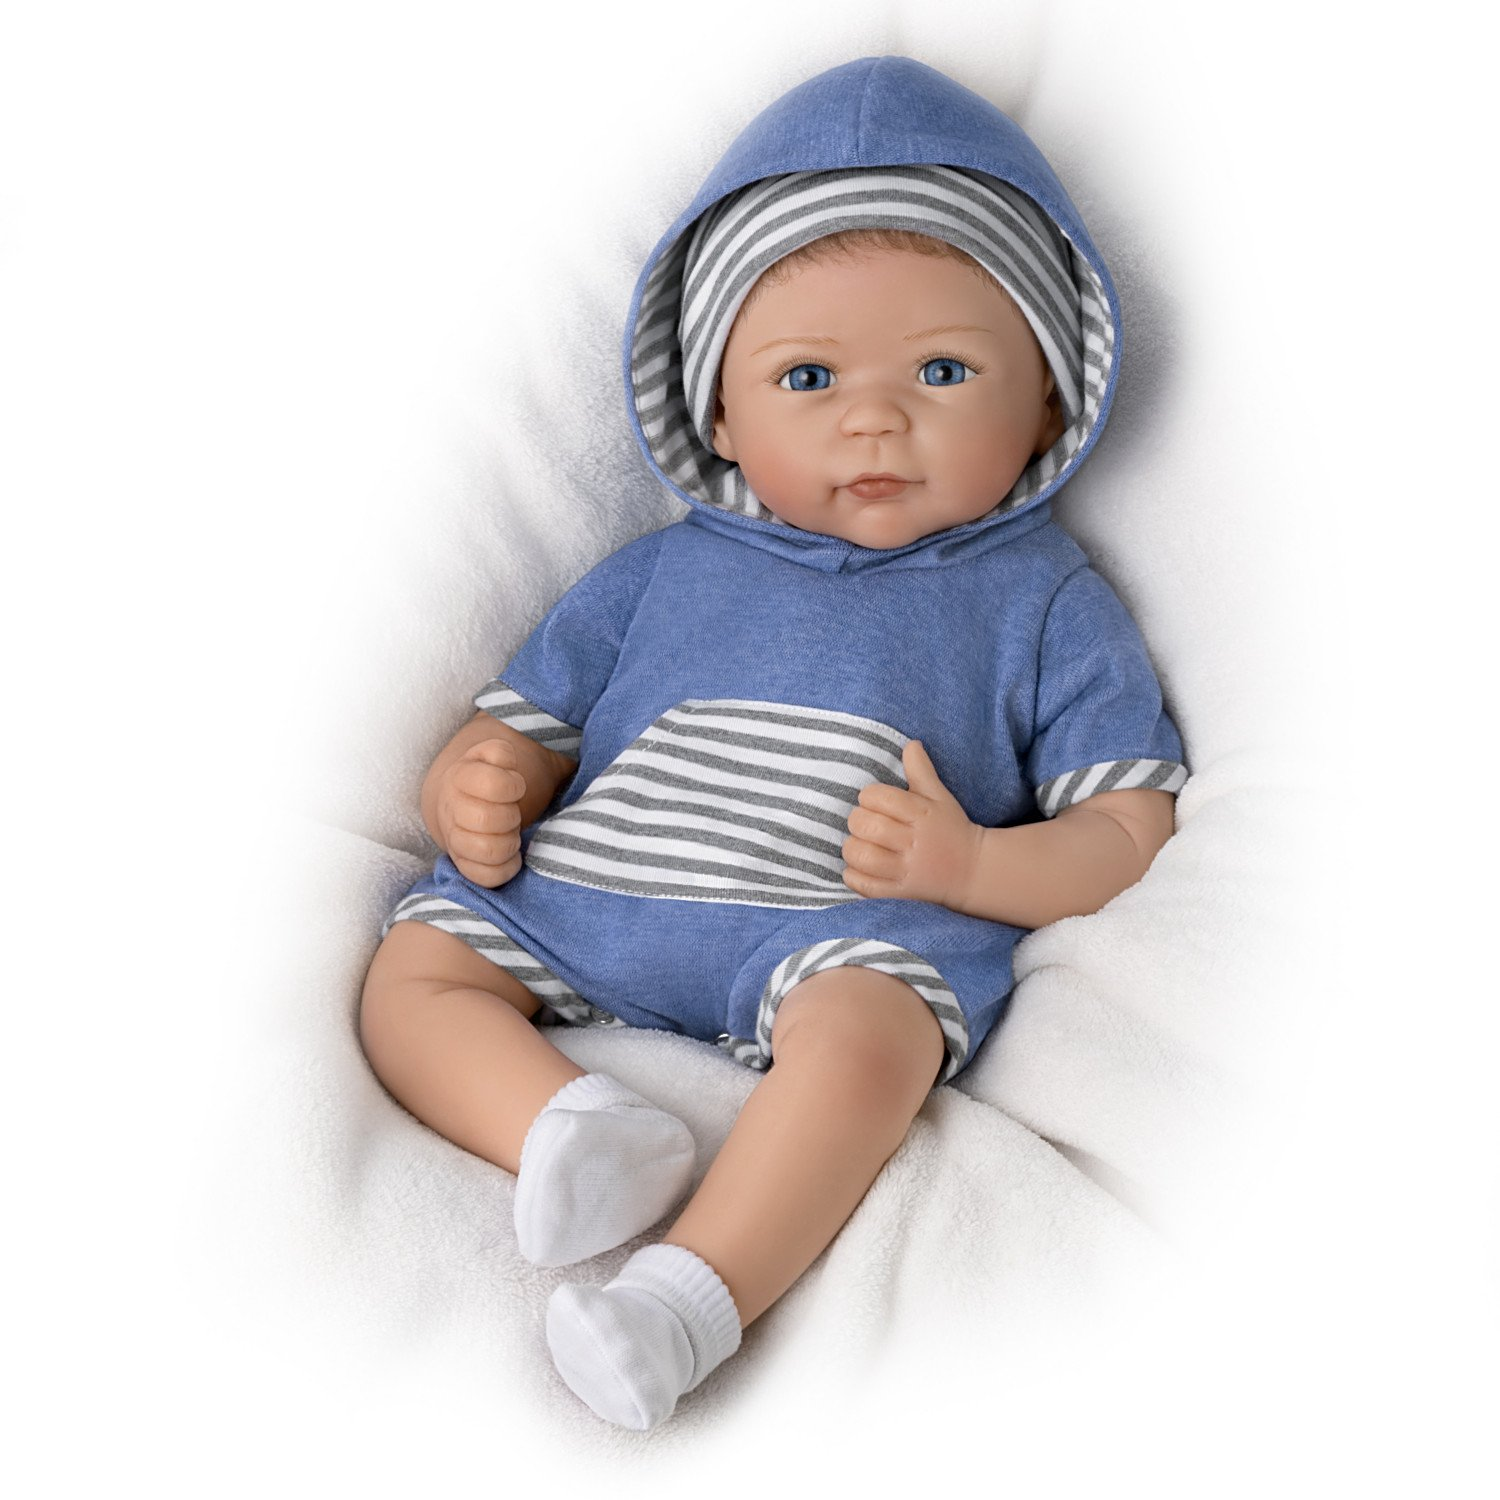 The Ashton-Drake Galleries Linda Murray Lifelike Weighted Silicone Baby Doll with Rooted Hair